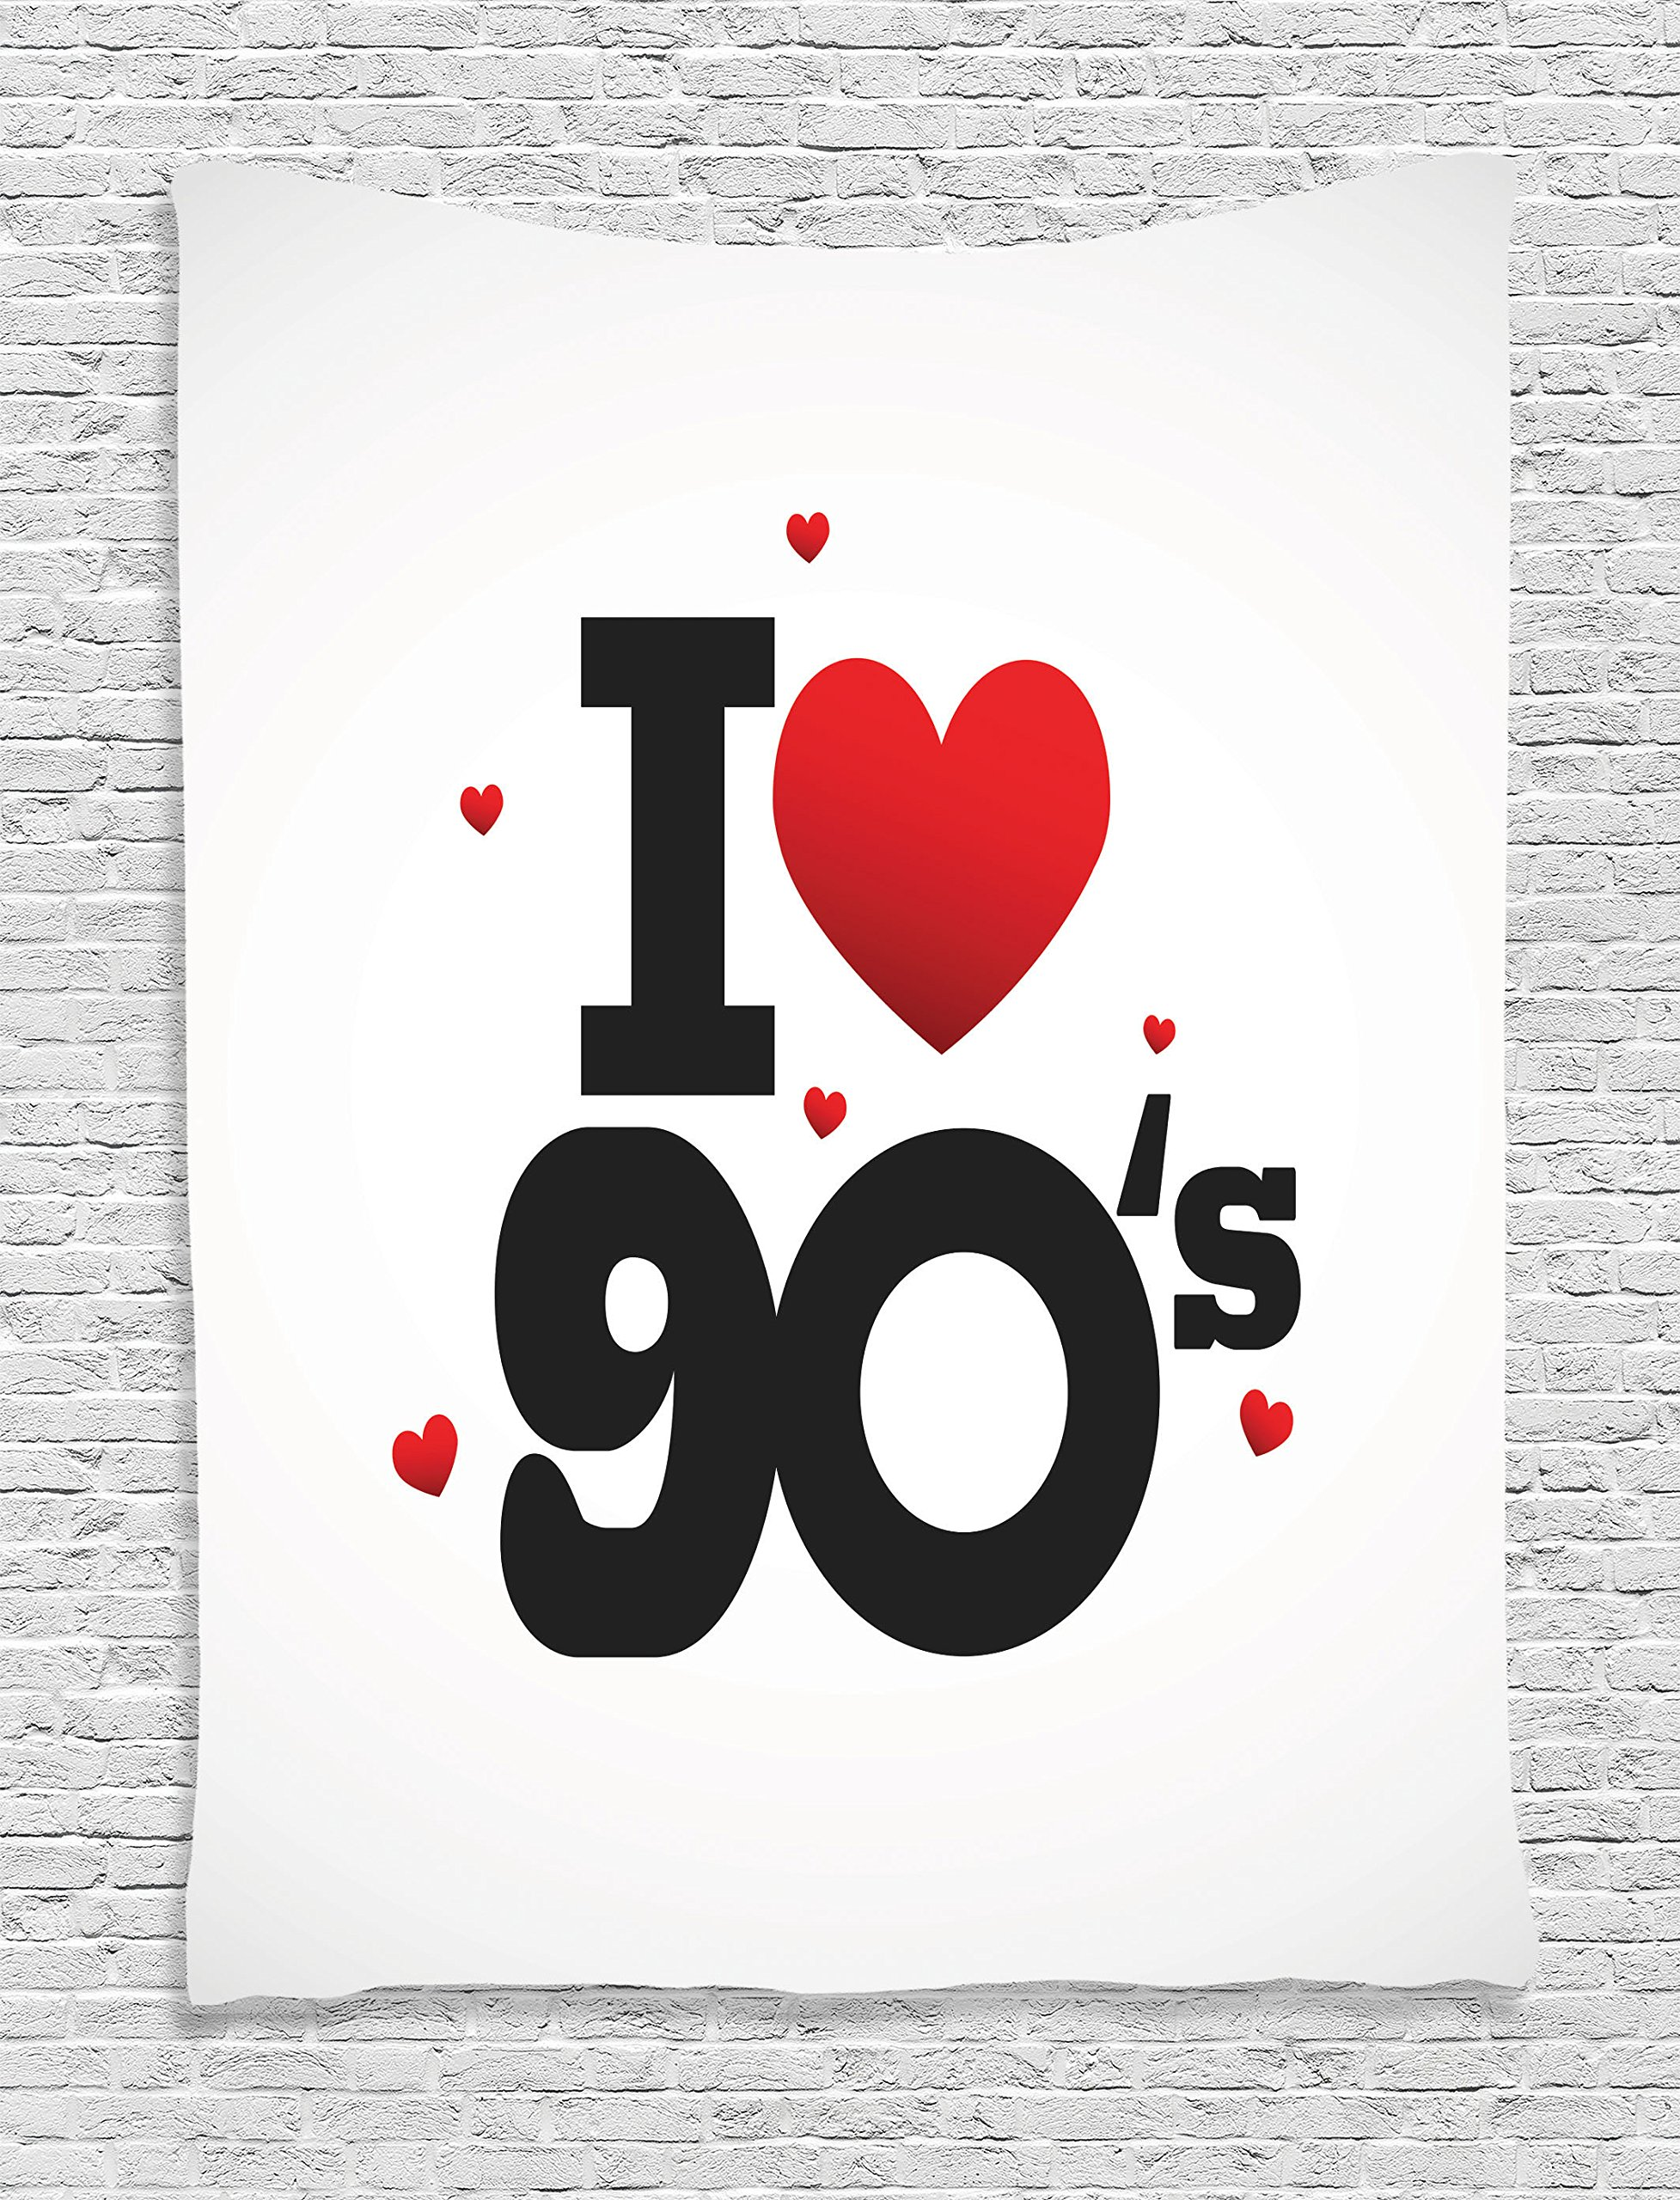 Ambesonne 90s Decorations Collection, I Love 90s Illustration Hearts Decade Good Old Days Favorite Times Passion Artwork, Bedroom Living Room Dorm Wall Hanging Tapestry, Black Red White